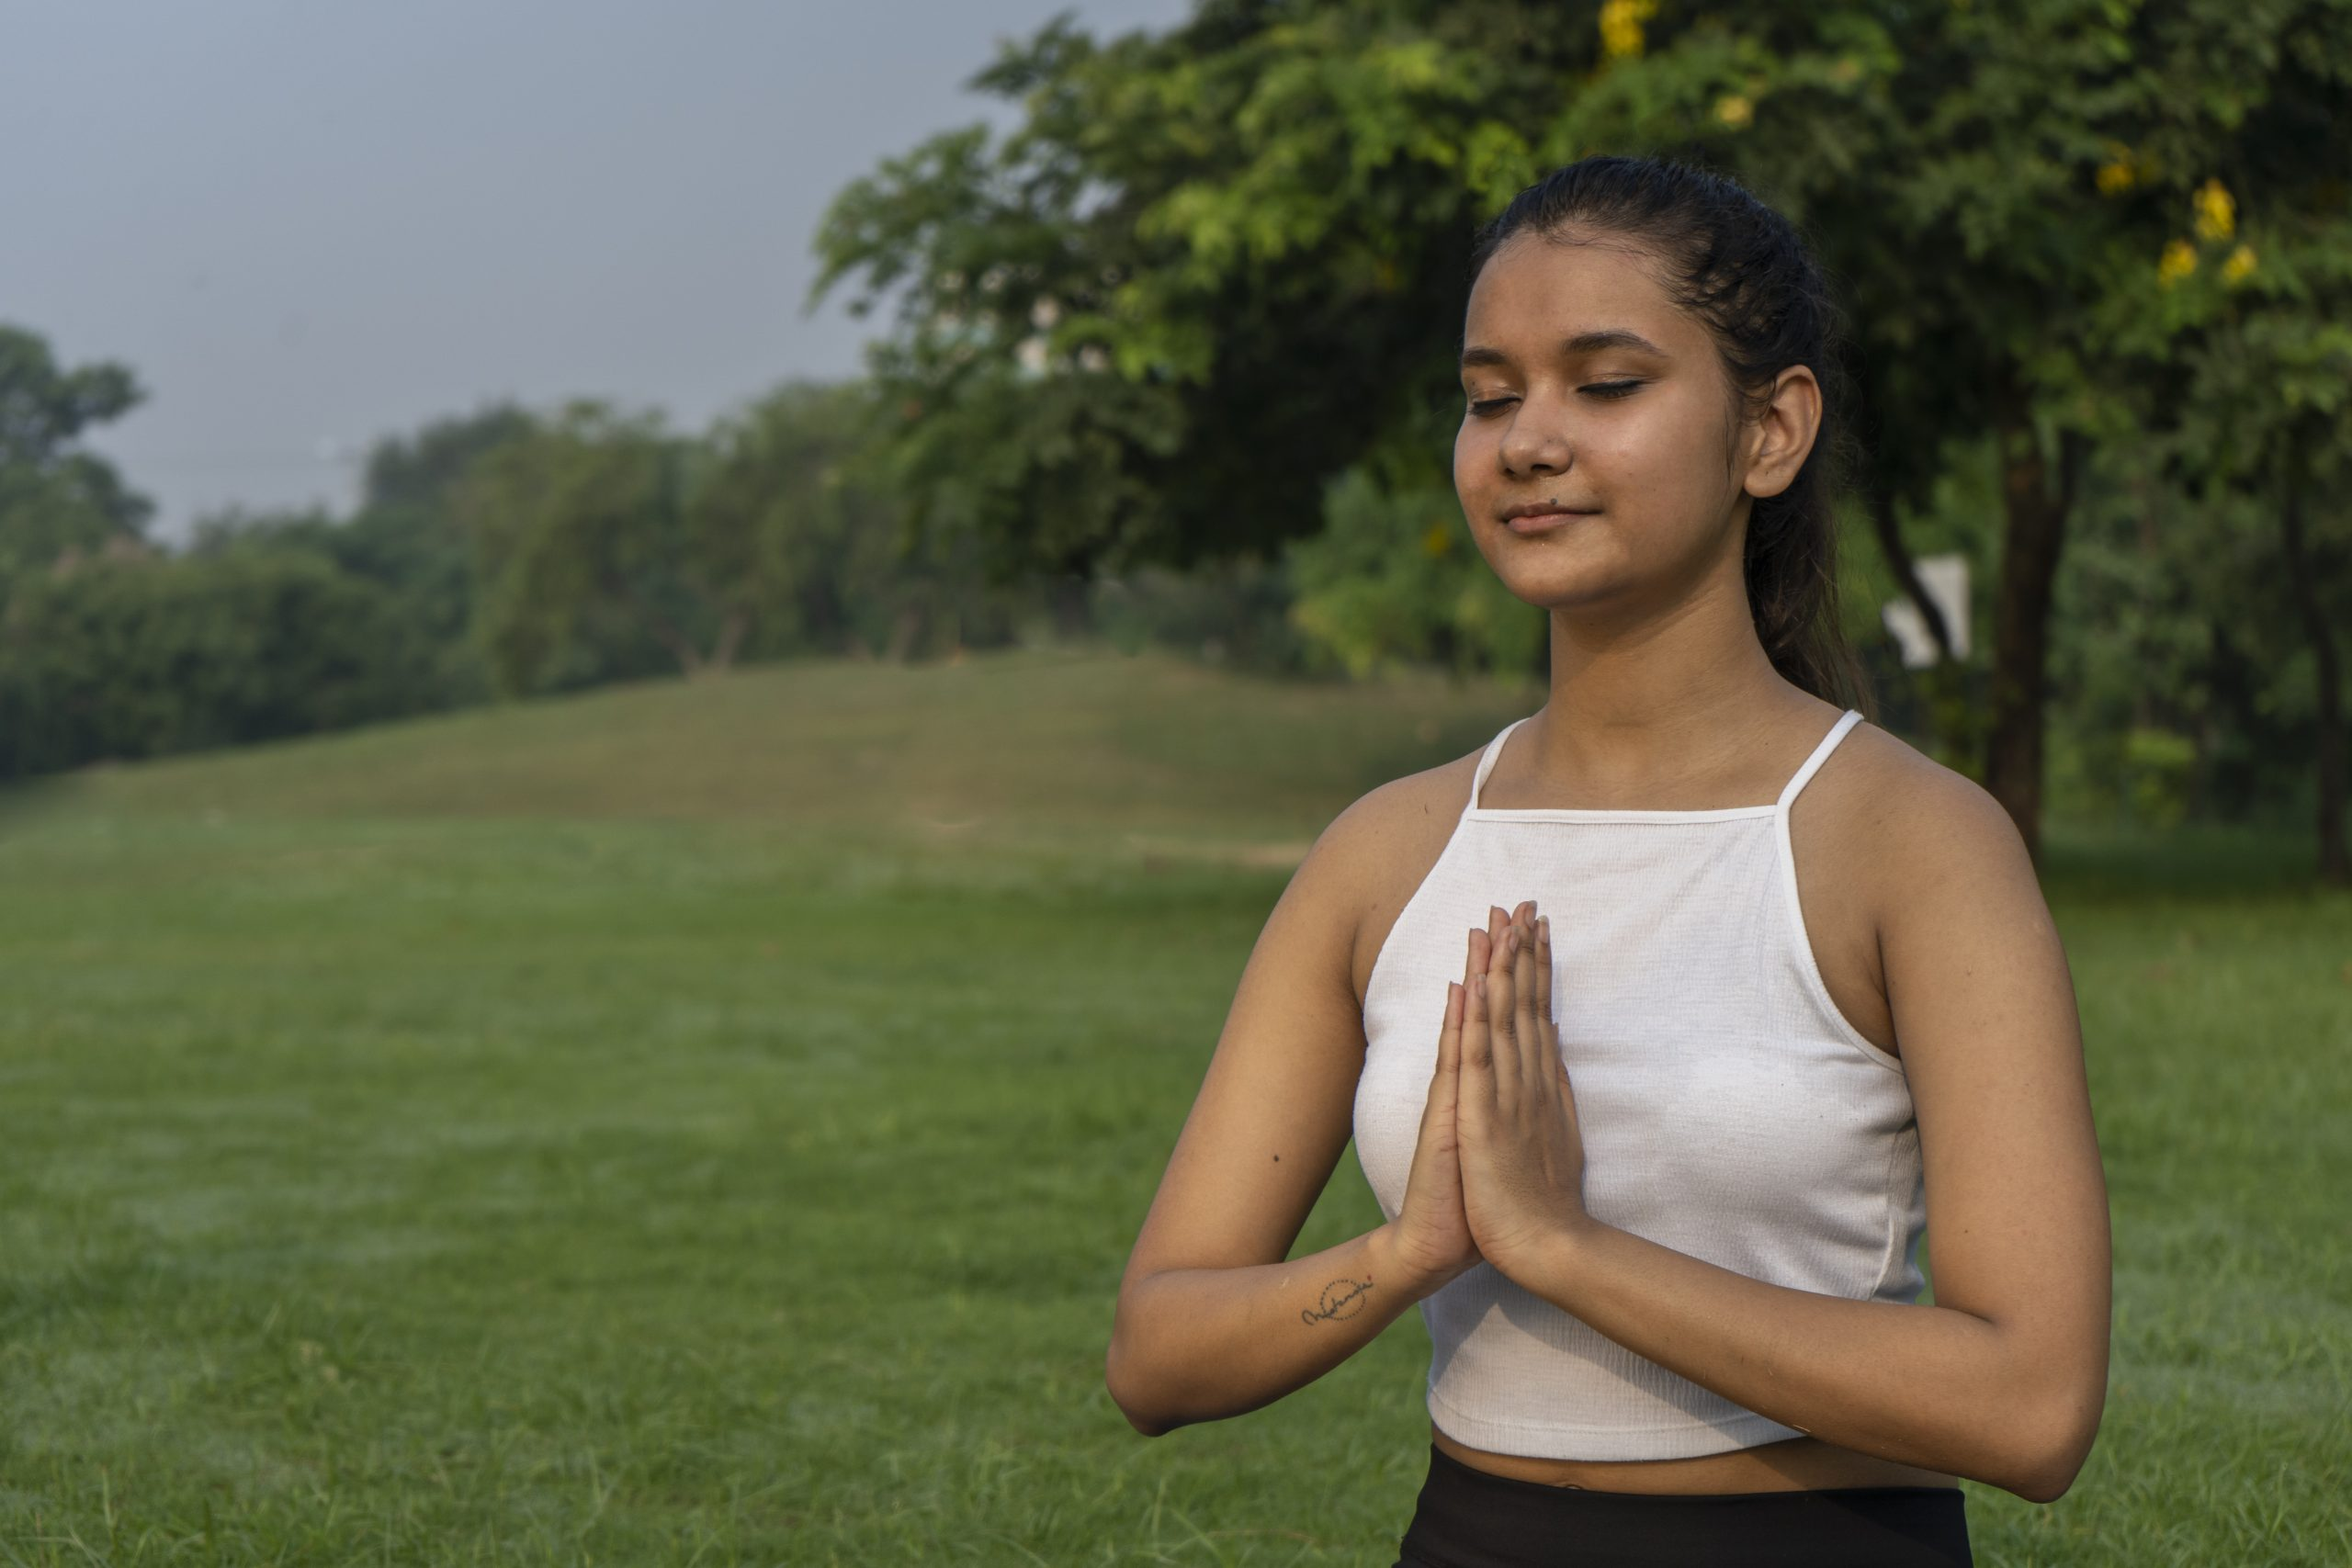 A girl performing meditation